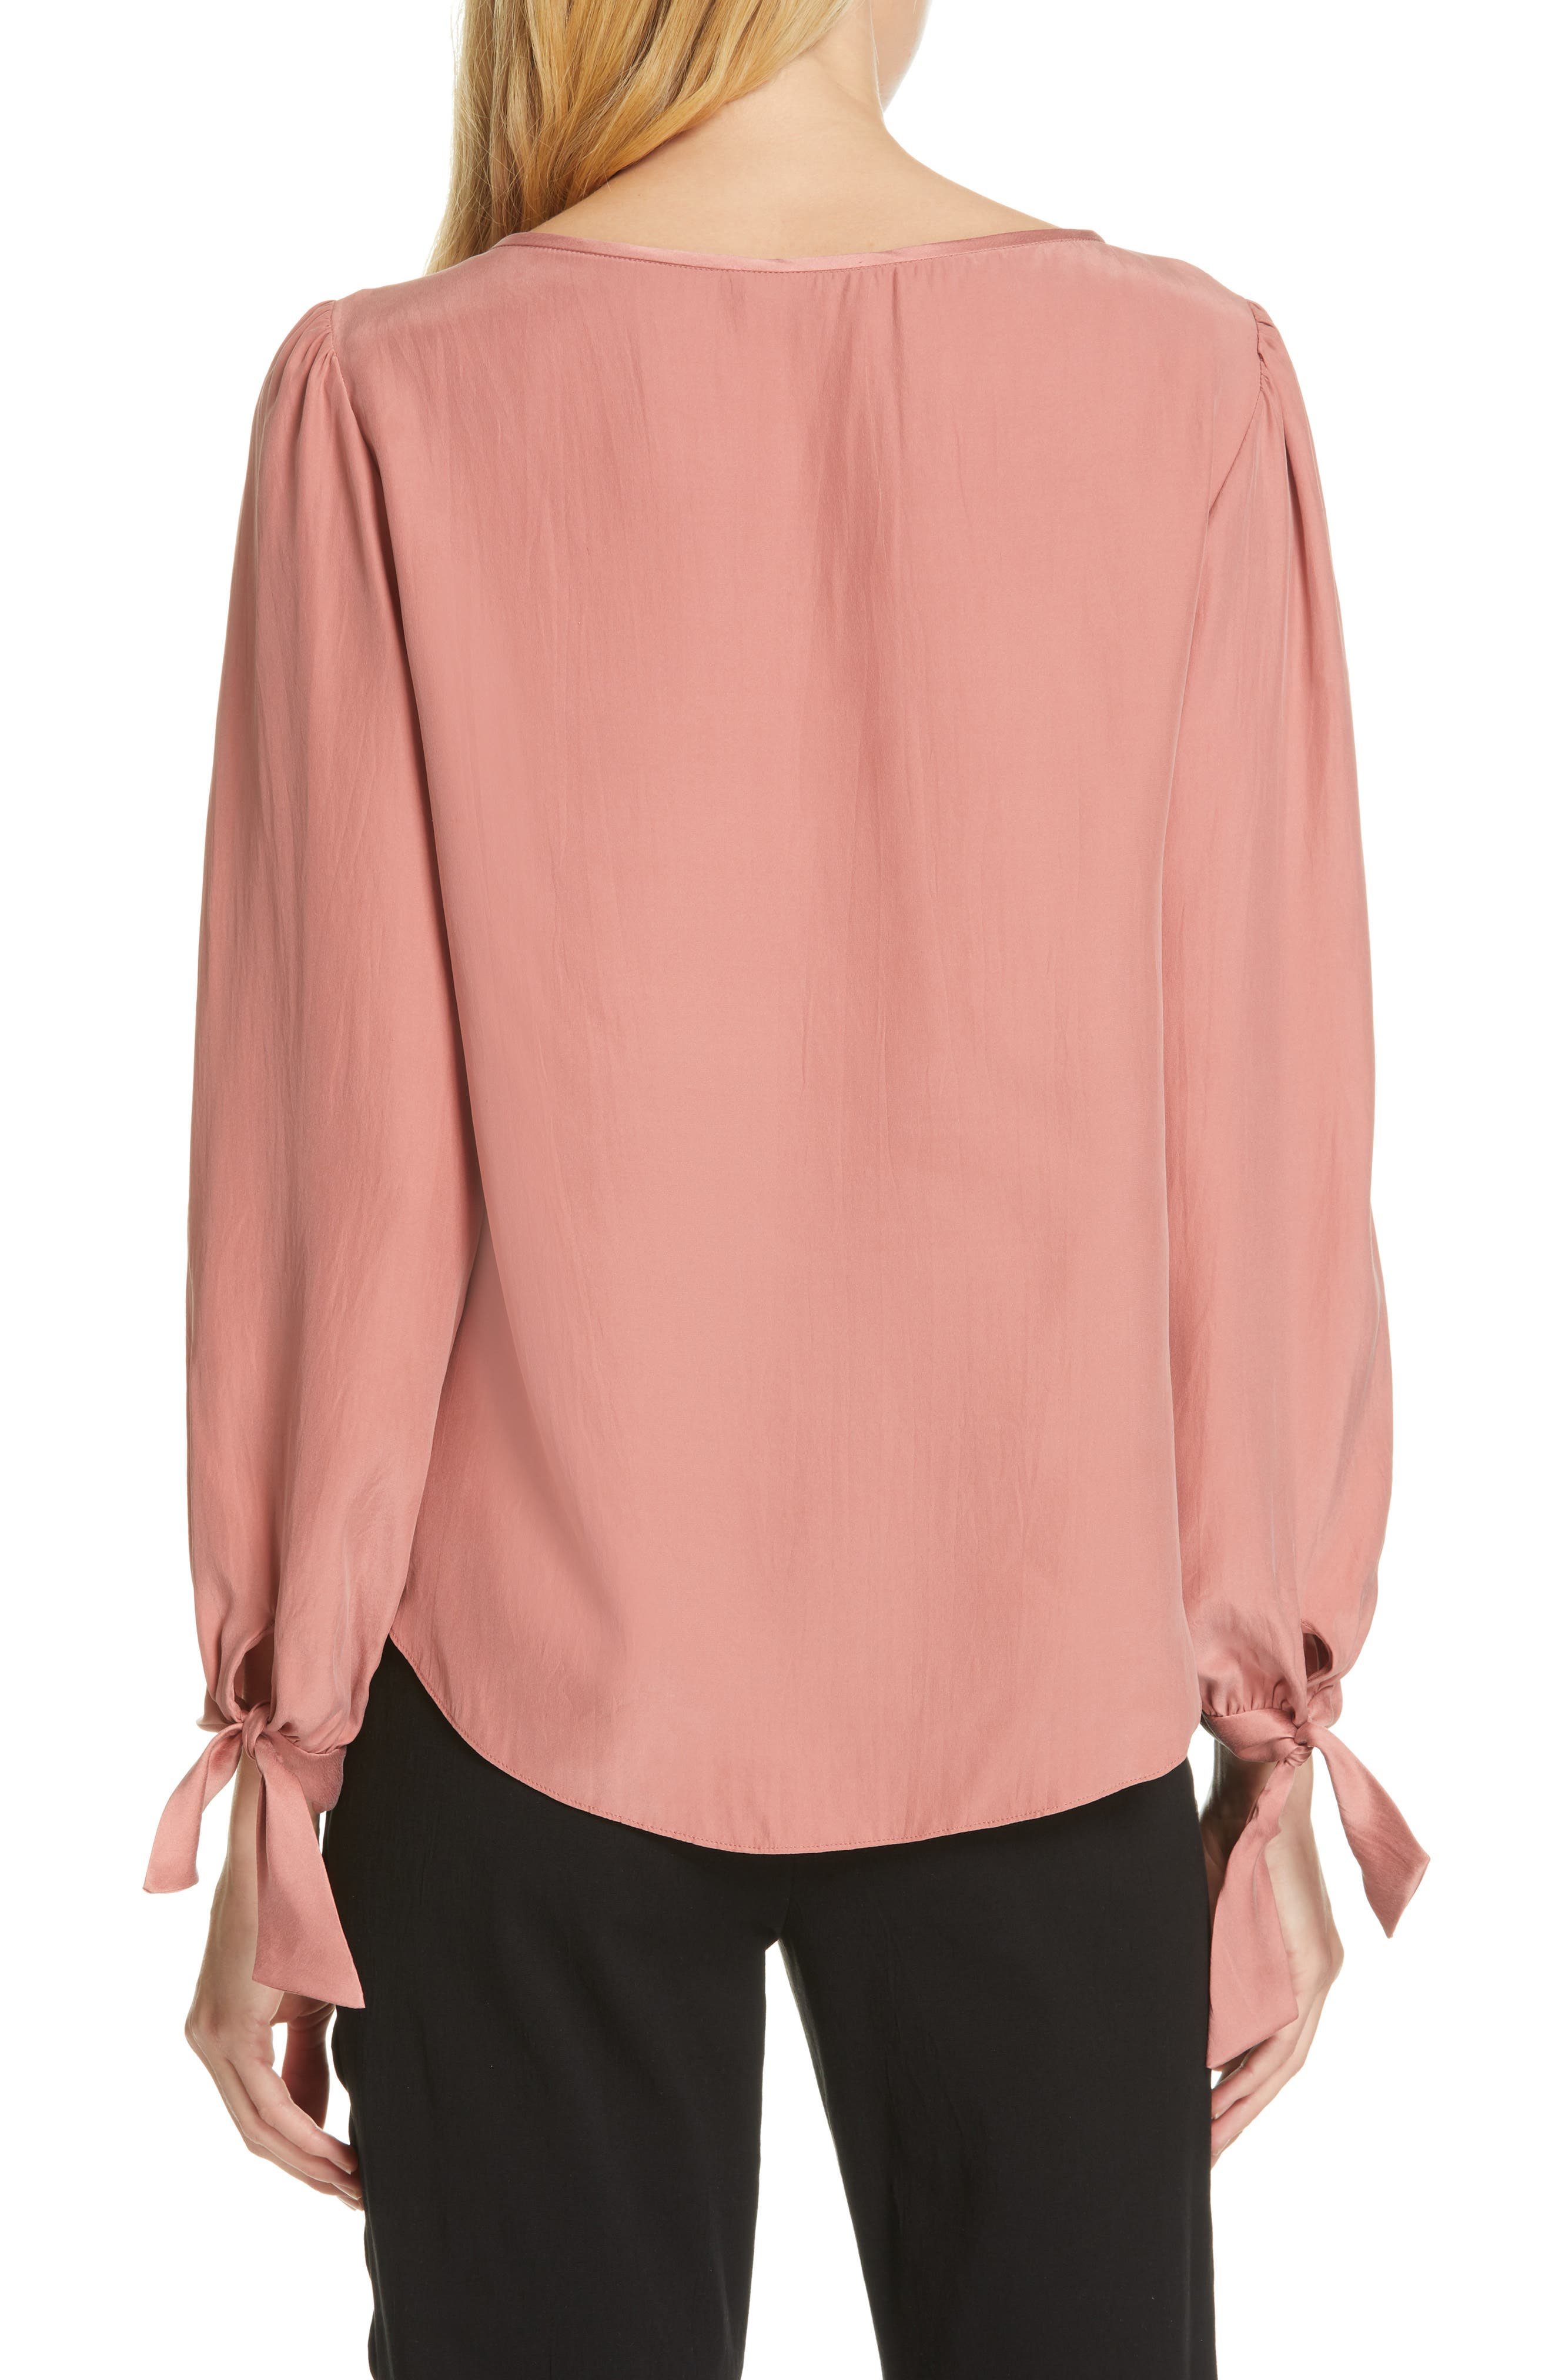 TAILORED BY REBECCA TAYLOR,                             Sleeve Tie Silk Charmeuse Top,                             Alternate thumbnail 2, color,                             LIPGLOSS